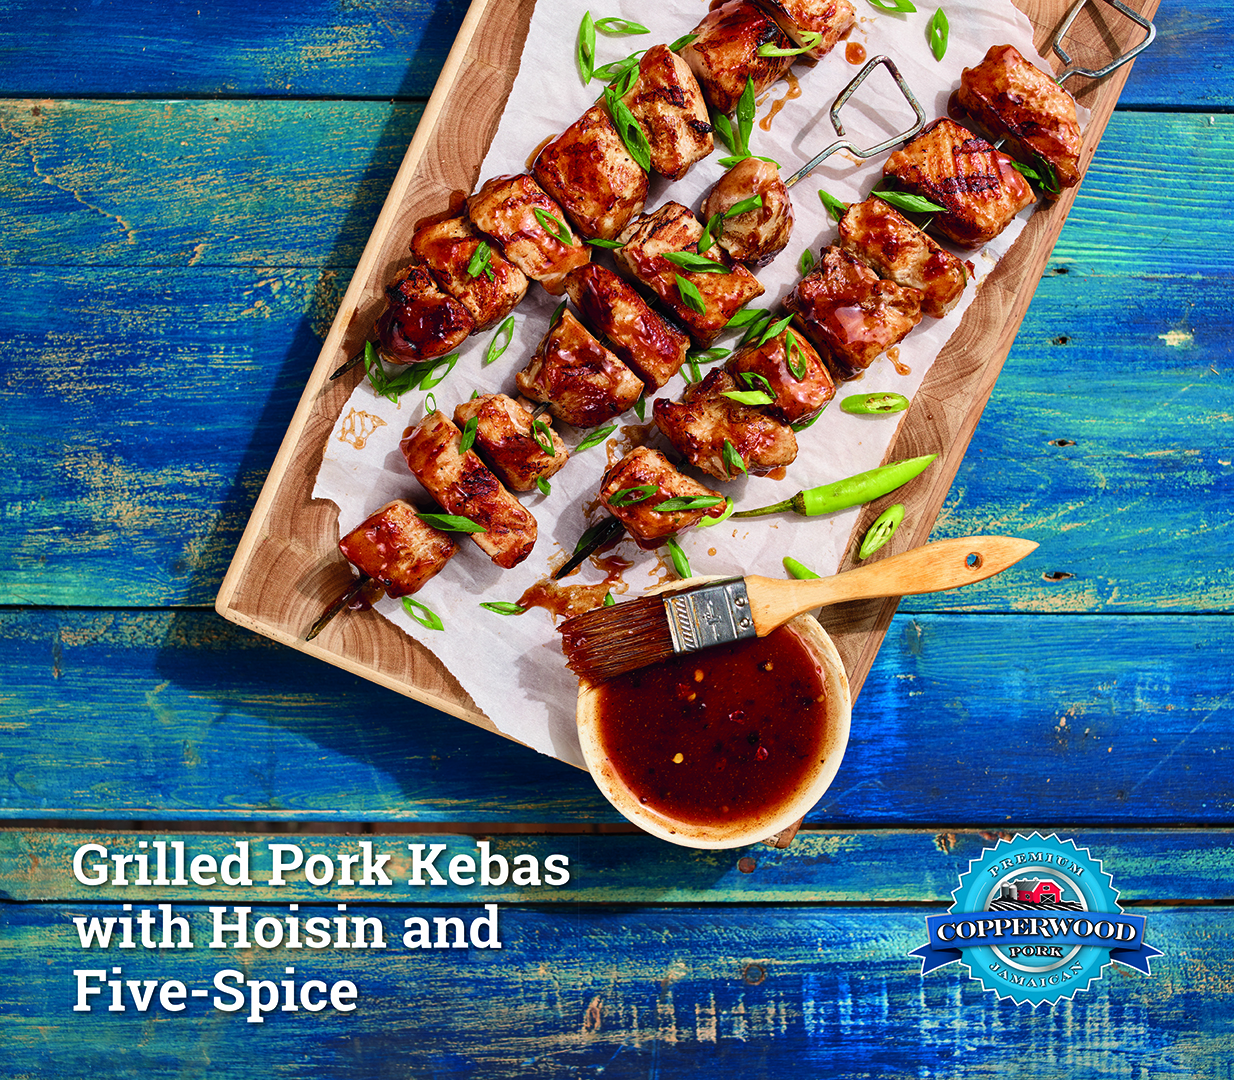 Grilled Pork Kebas with Hoisin and Five Spice